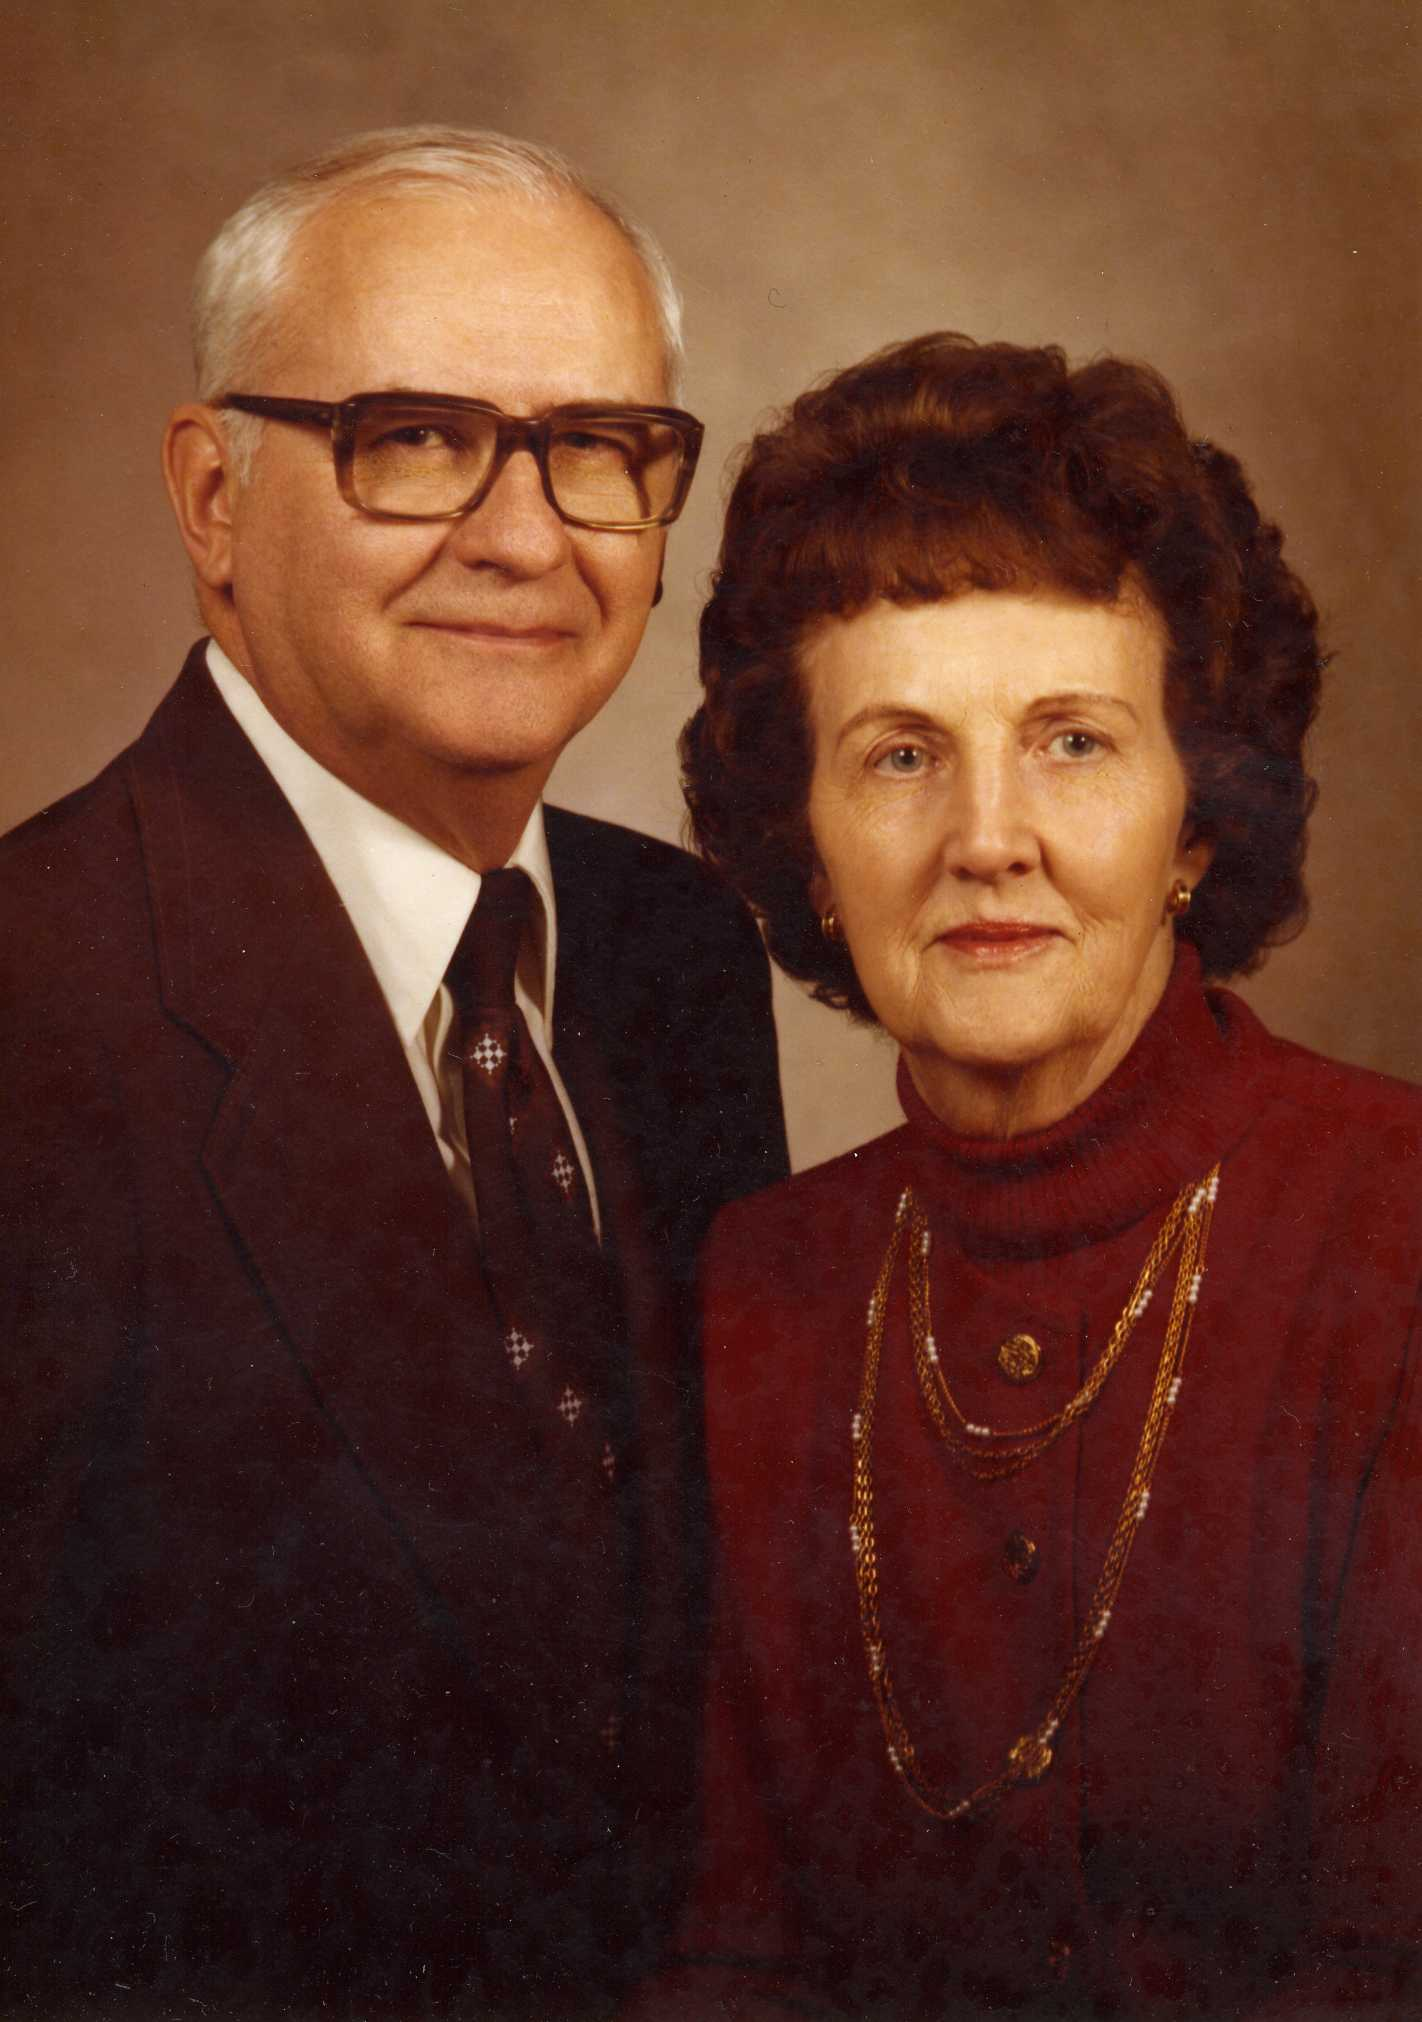 Bob and Jerene Barlow